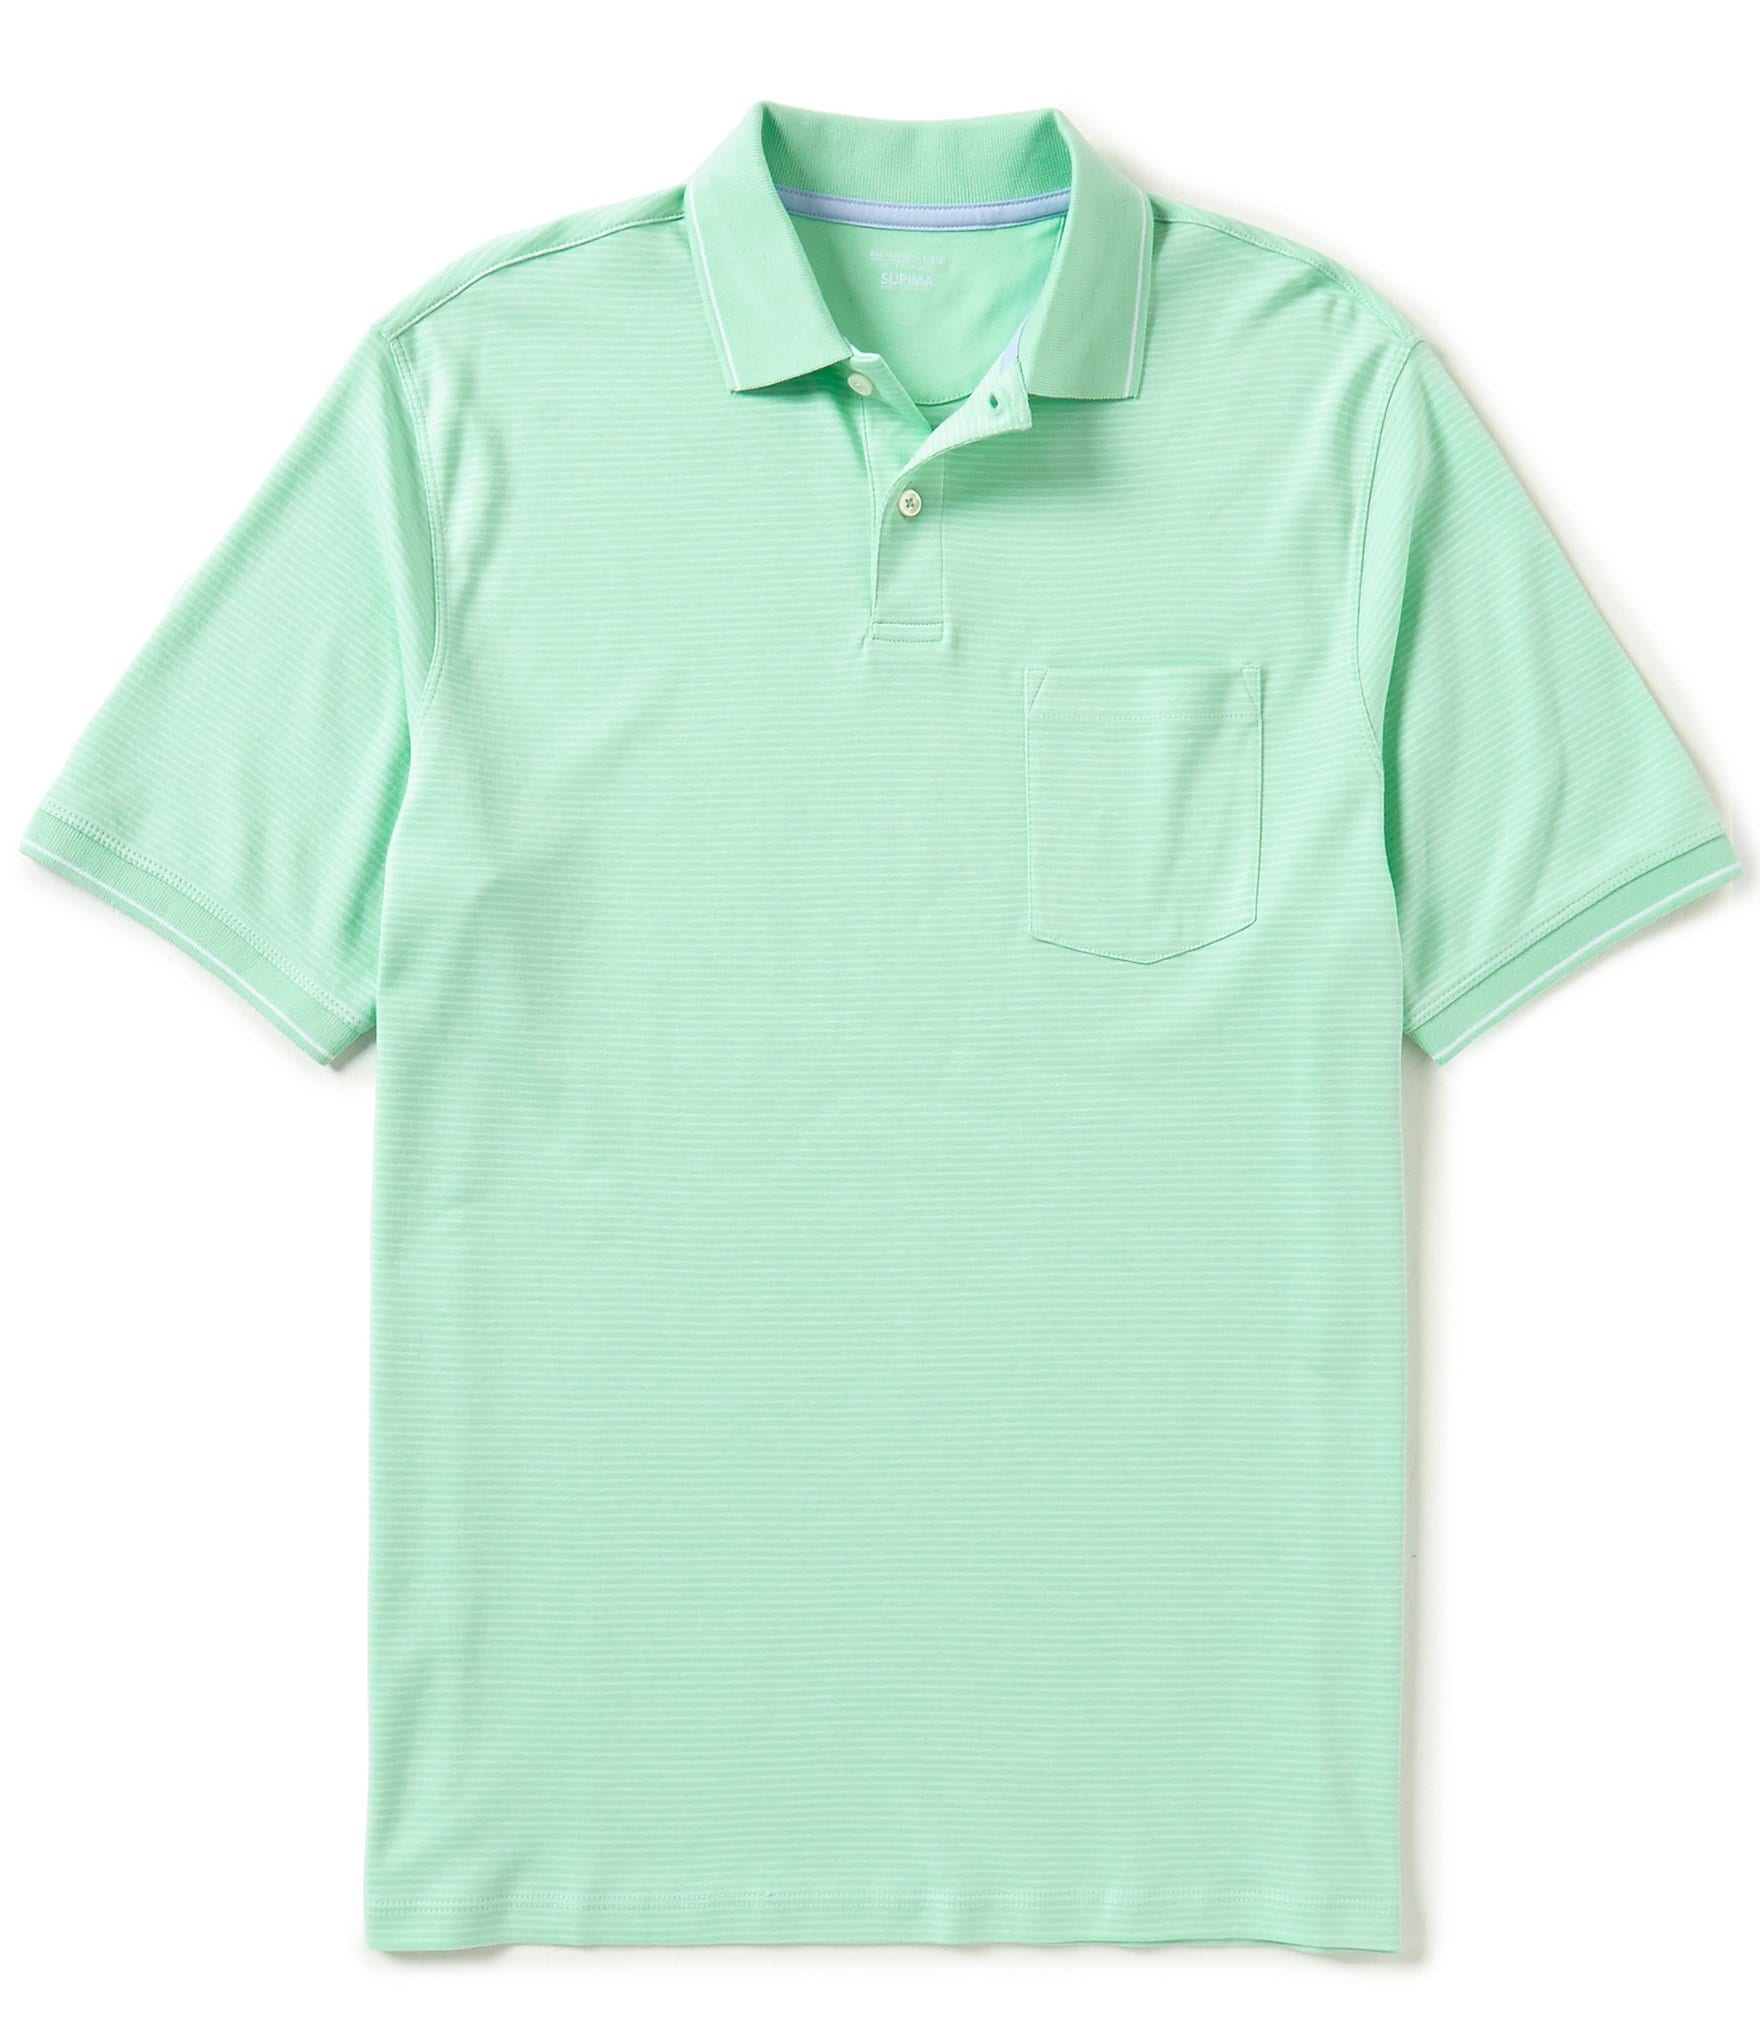 Roundtree yorke supima cotton striped short sleeve polo for Mint color polo shirt